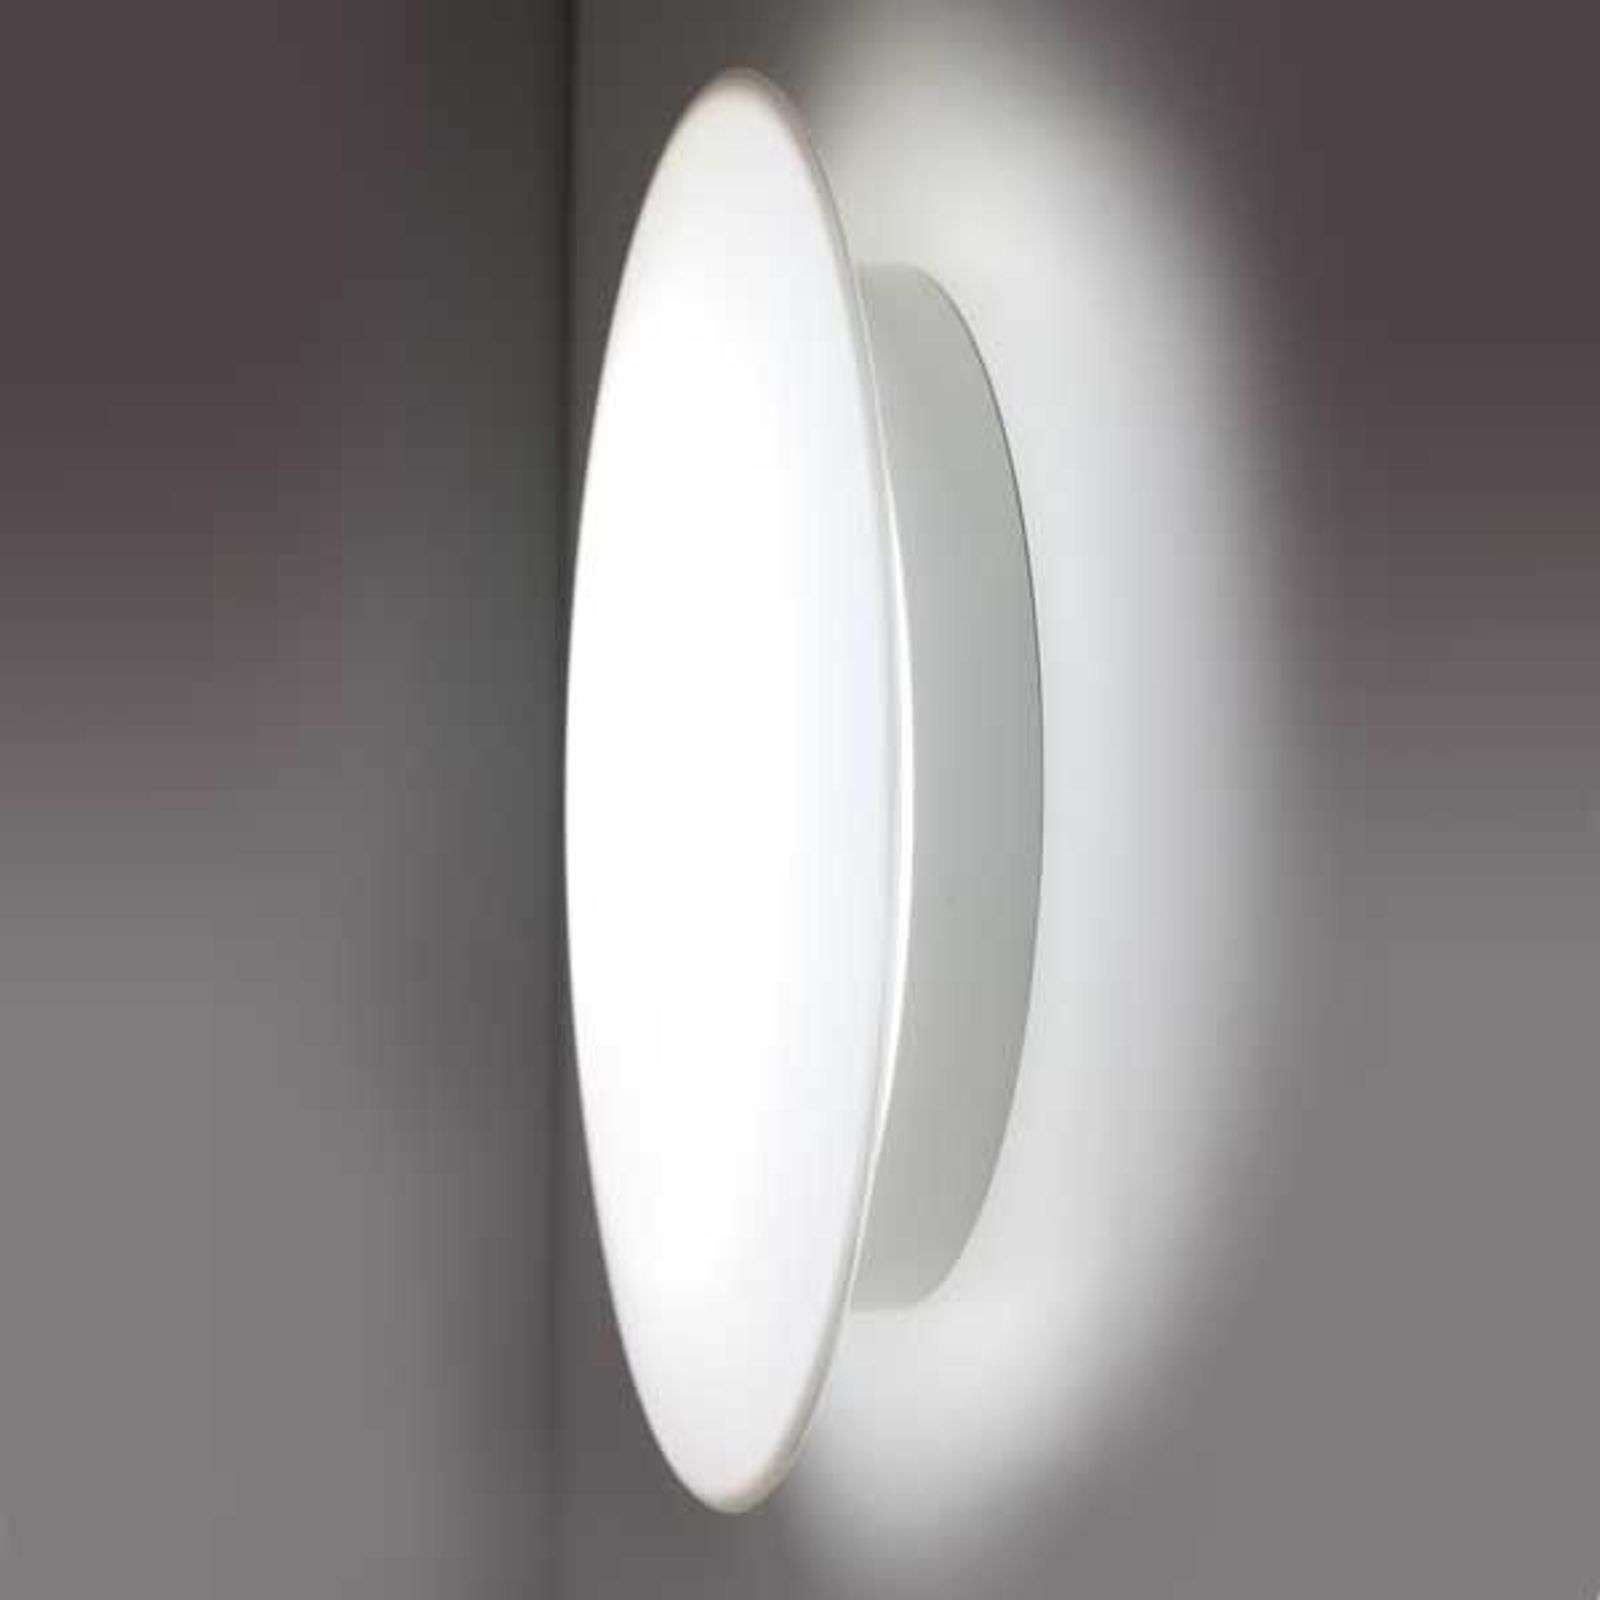 Lámpara LED SUN 3 futurista, color blanco, 18W 3K